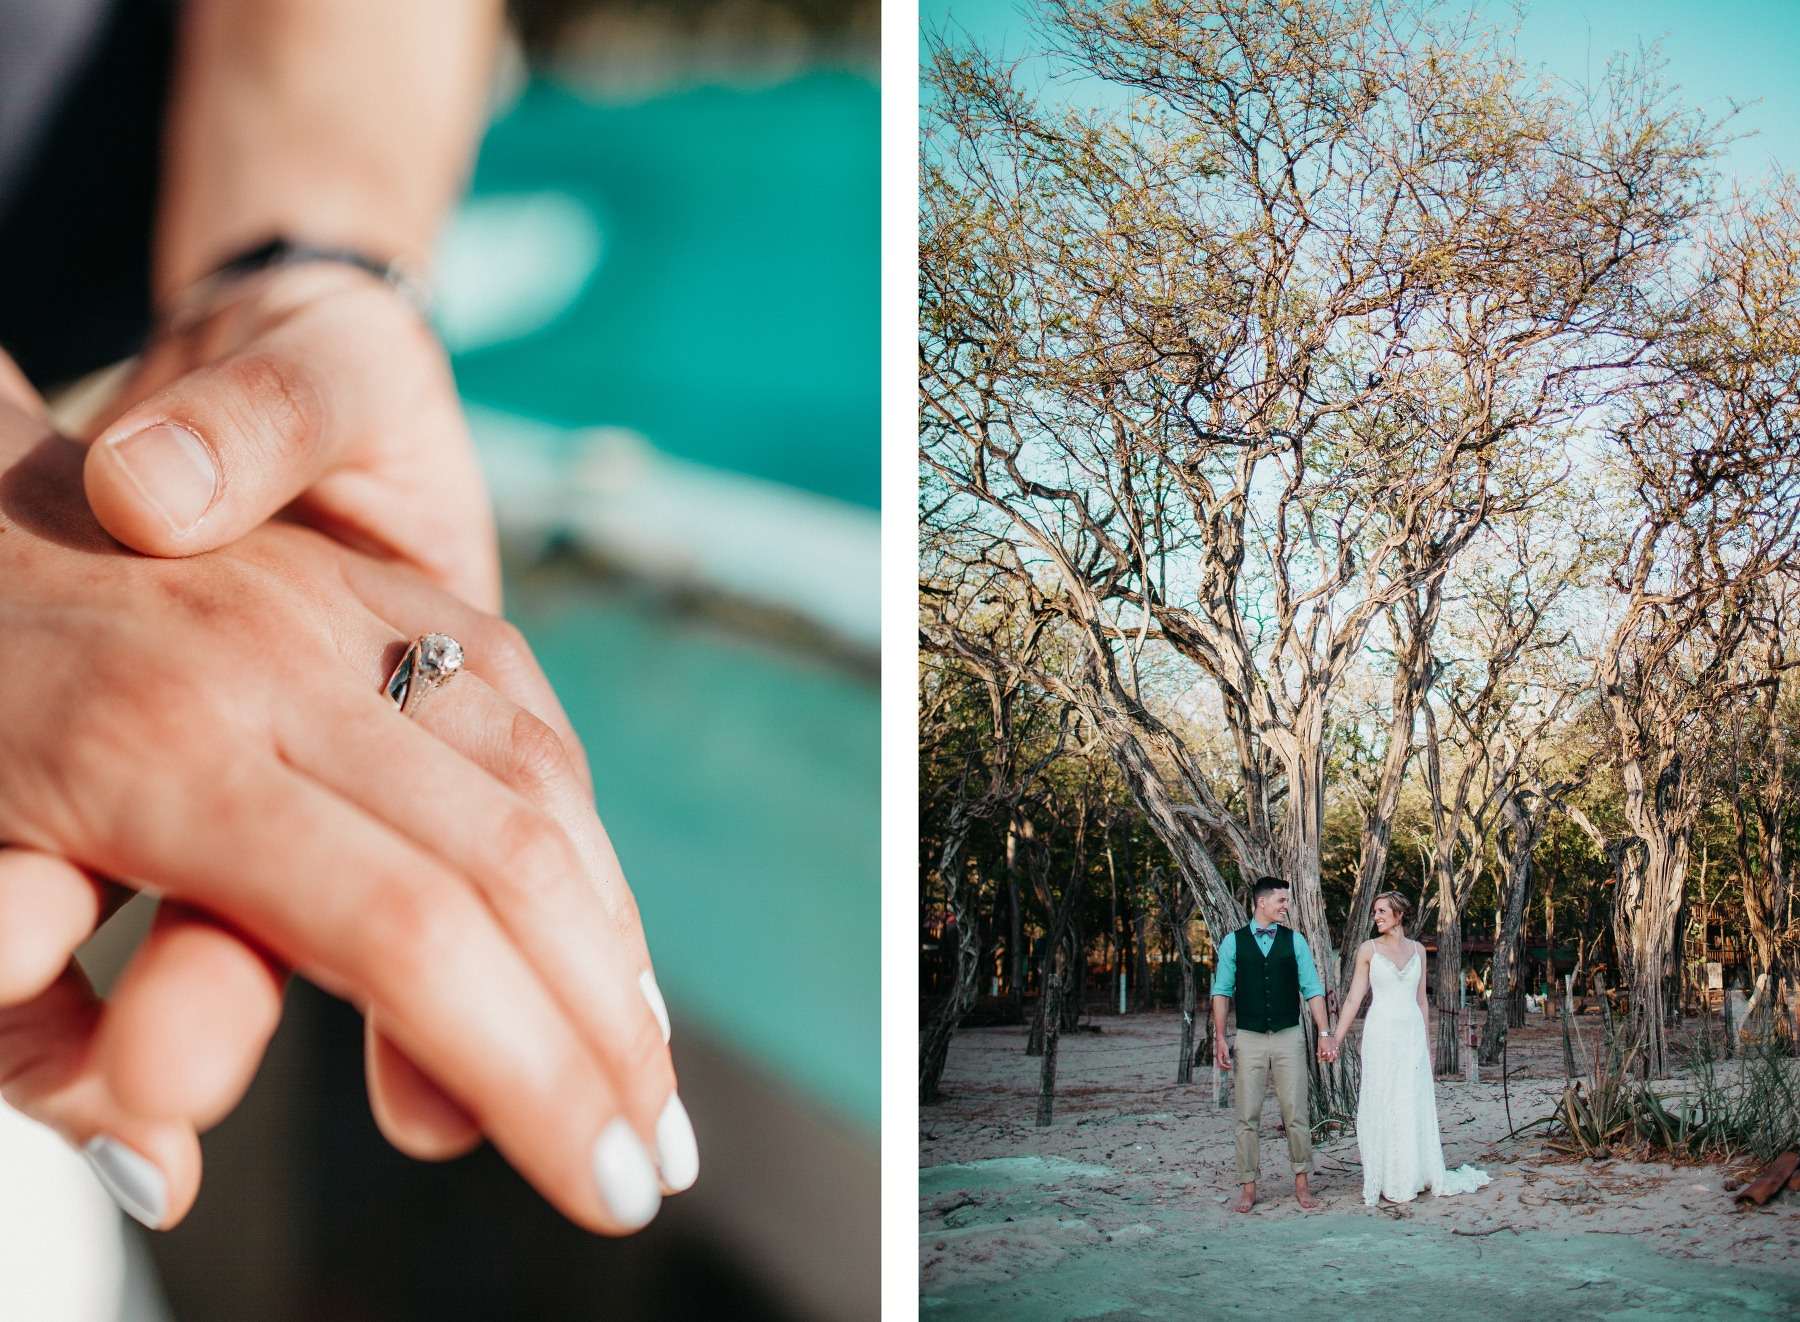 Wedding rings - destination elopement wedding